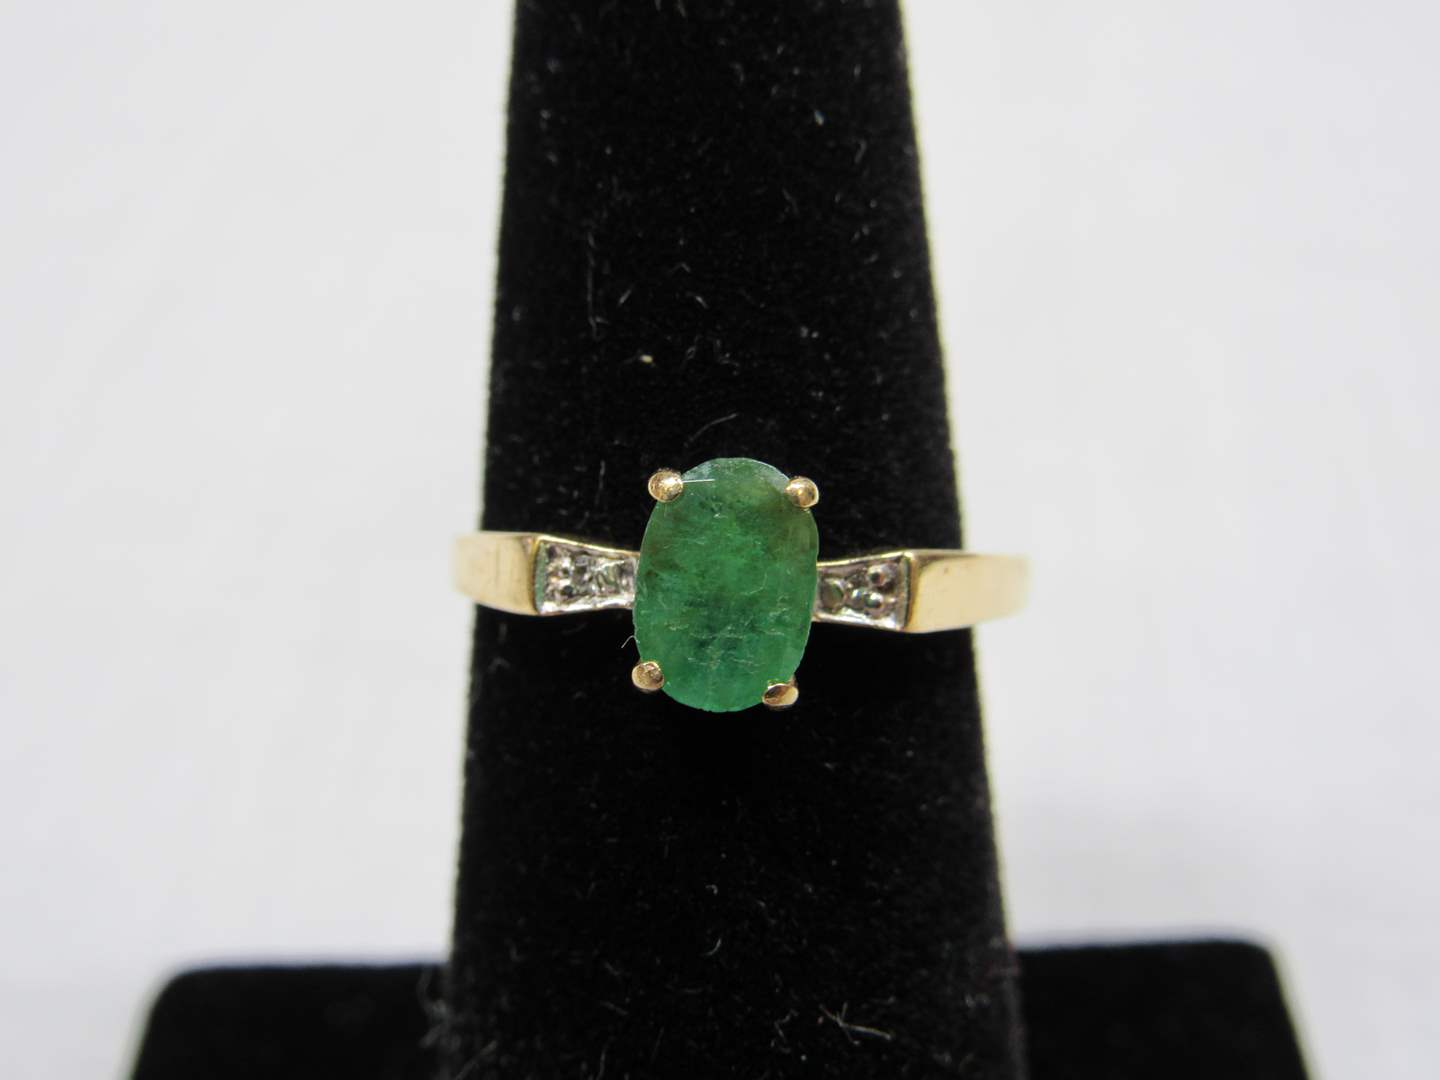 Lot # 107  Real emerald and diamond petite 14K gold ring 1.56 grams size 6 (main image)